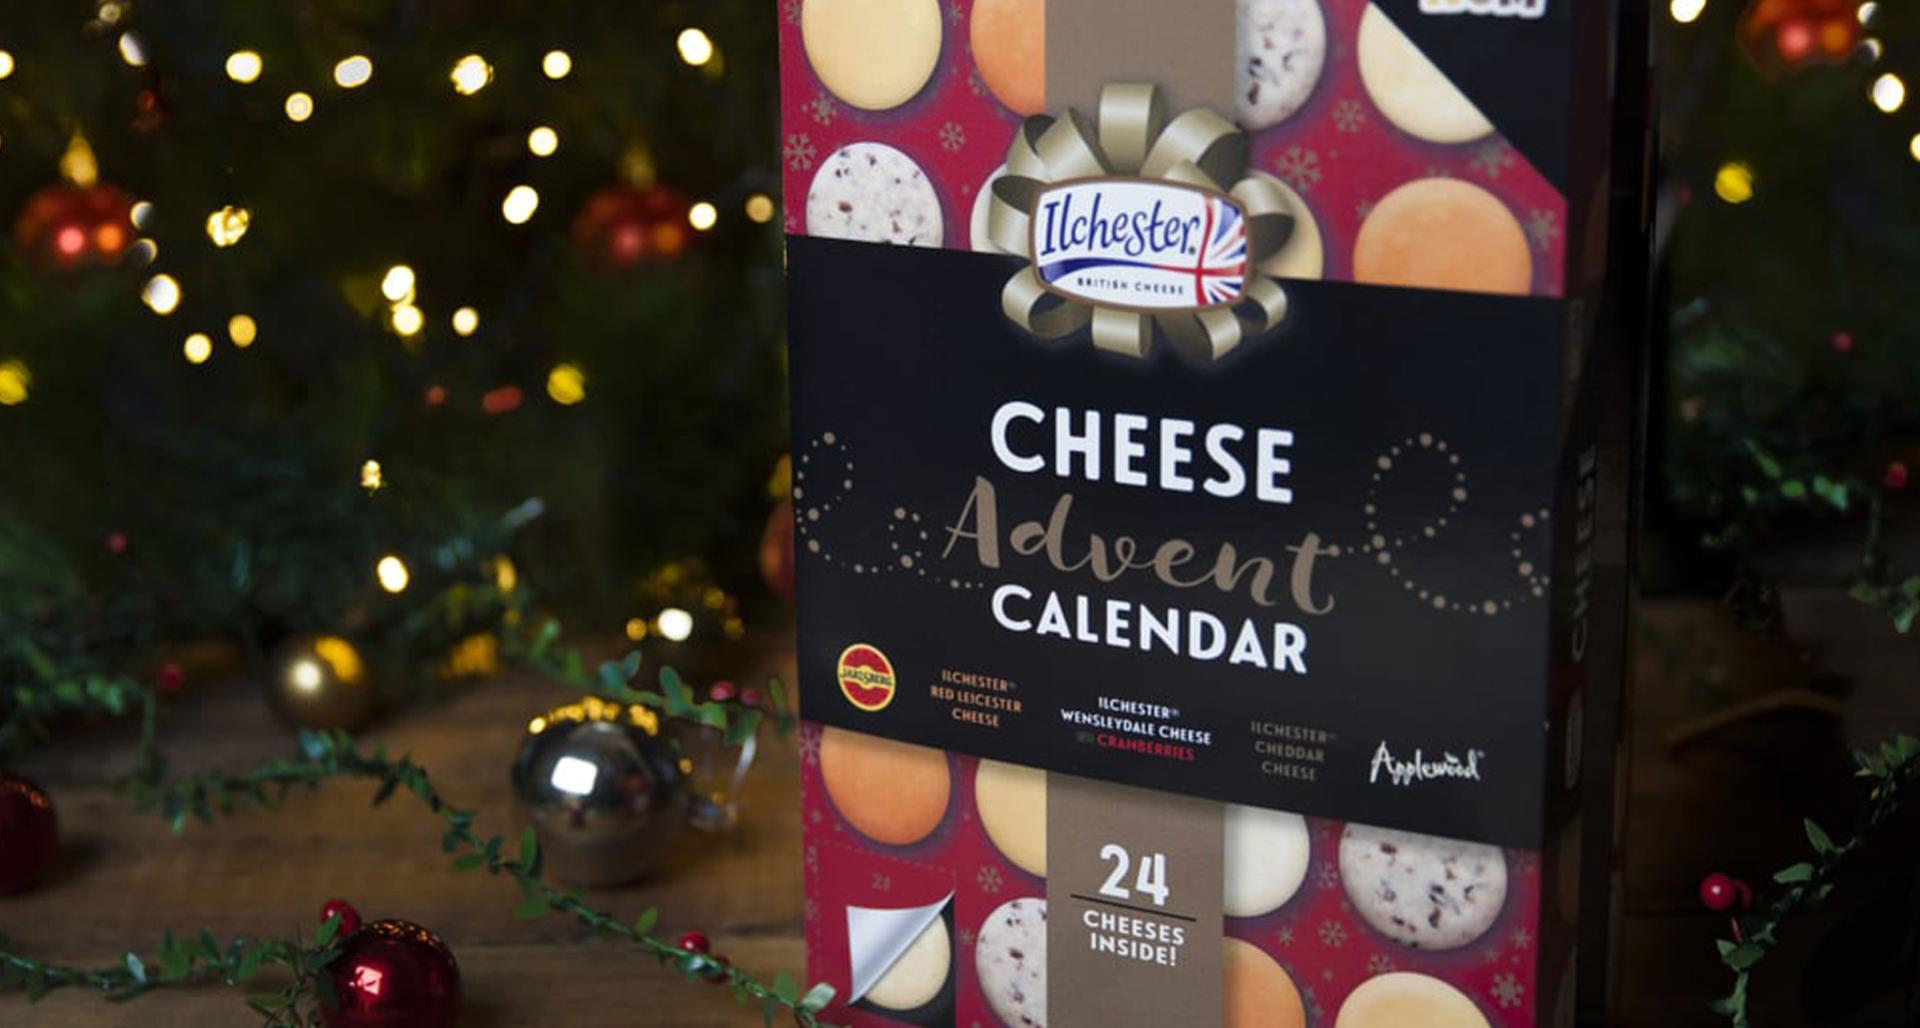 Ilchester Holiday Cheese Advent Calendar Available at More US Retailers